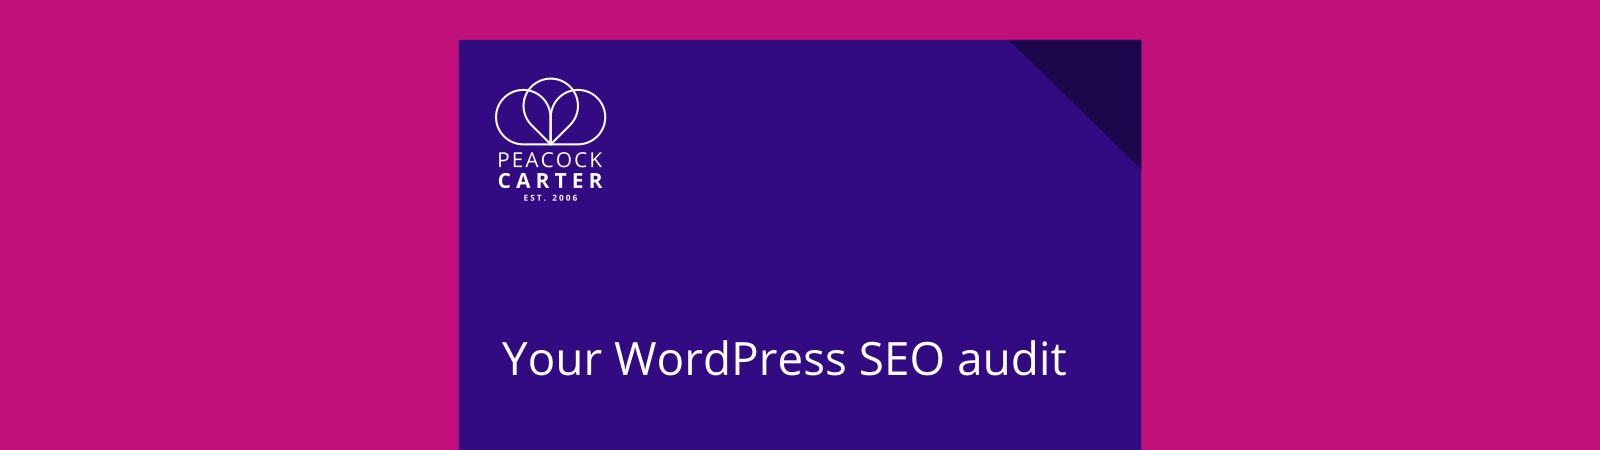 WordPress SEO audits for websites